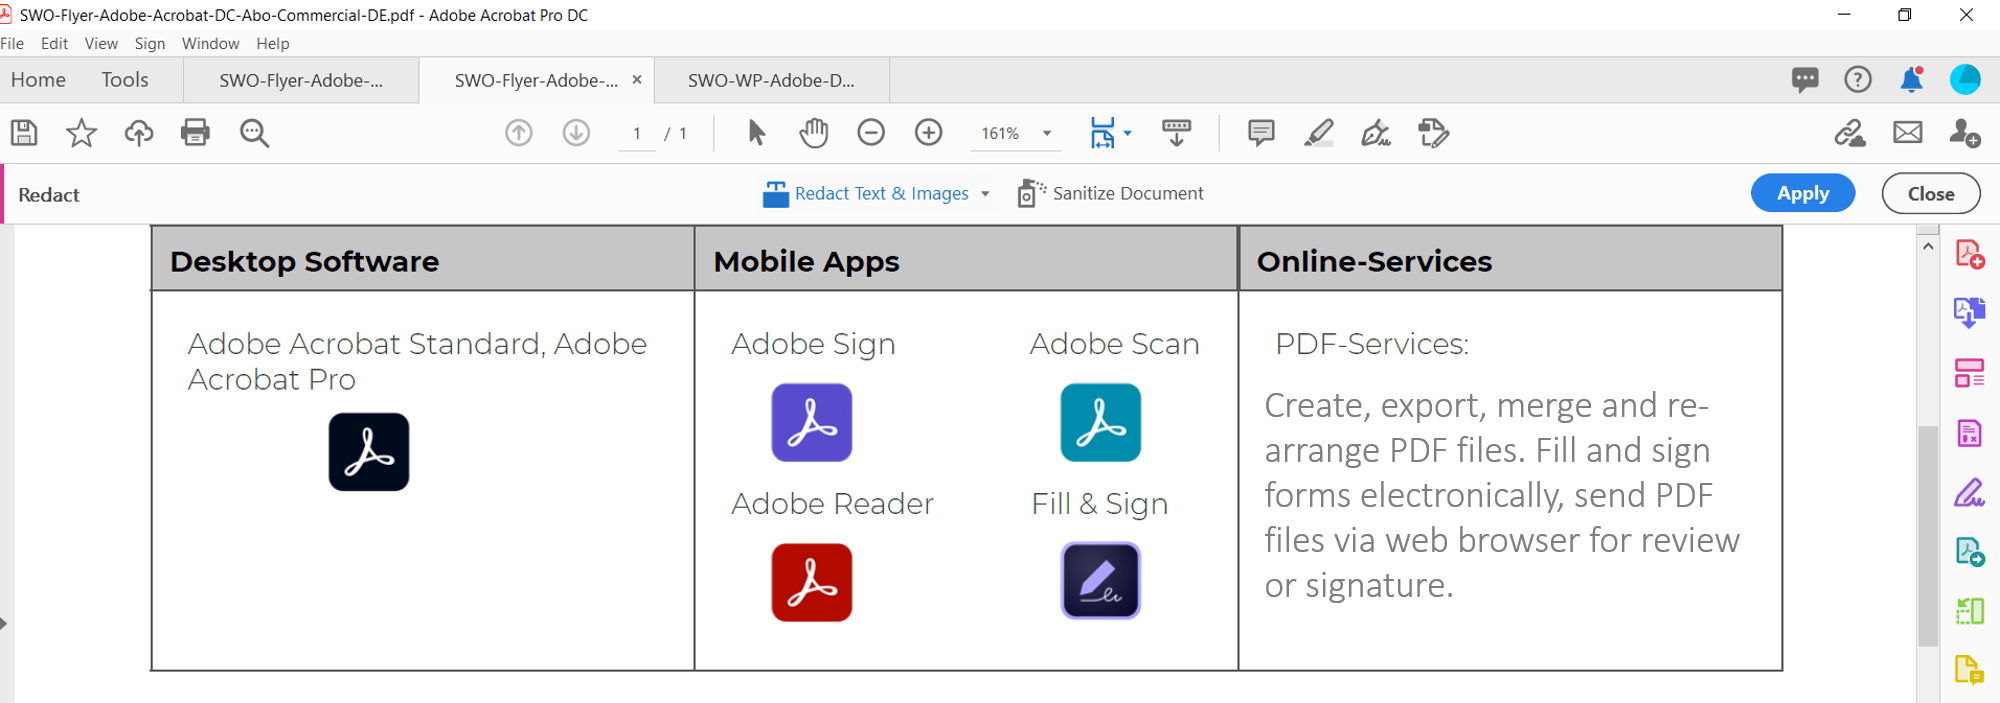 Document view with the Redact toolbar selected in Adobe Acrobat Pro